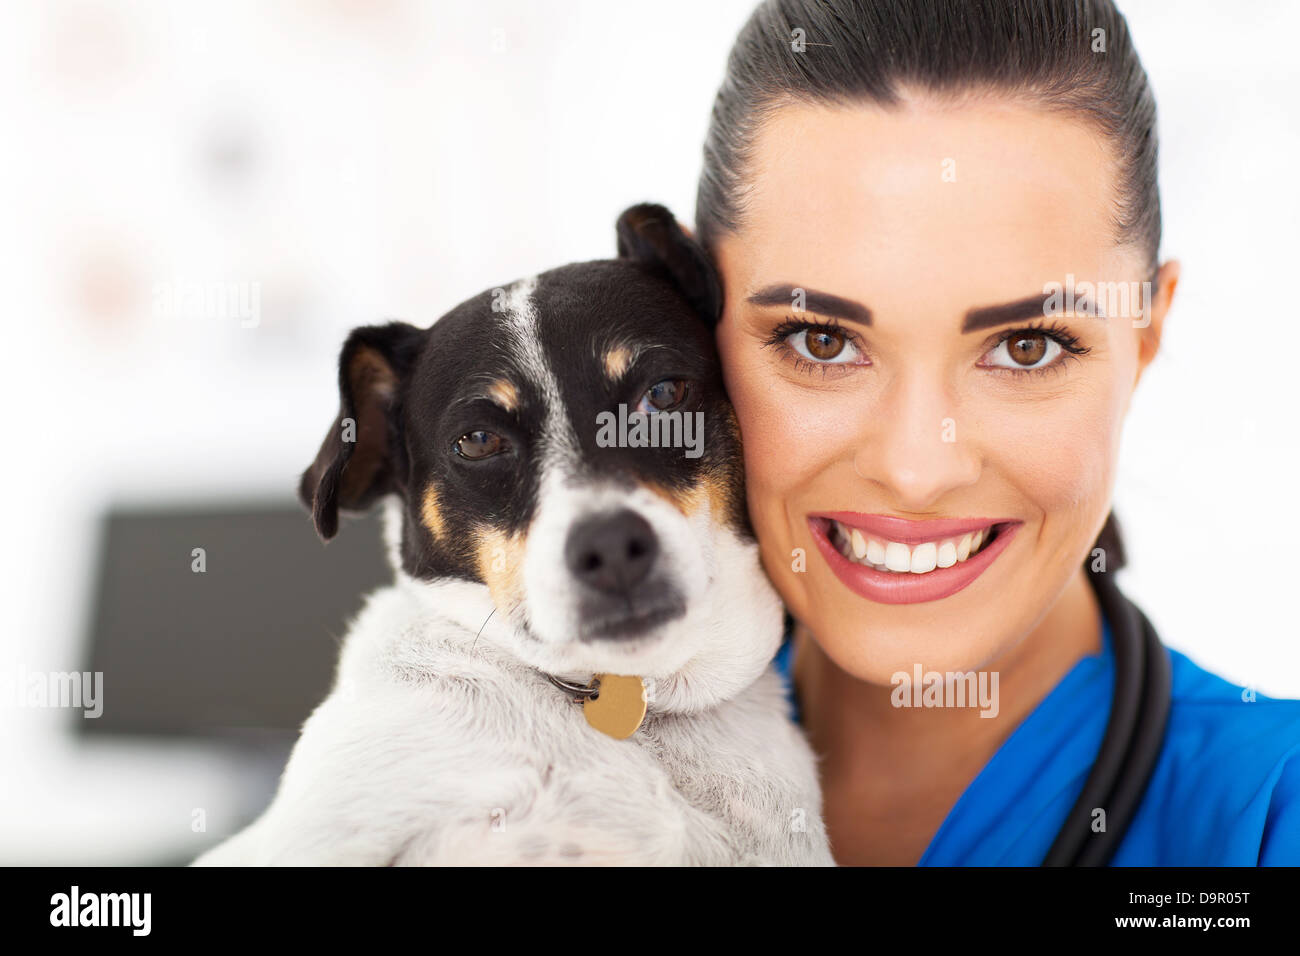 caring female vet holding a dog closeup portrait Stock Photo